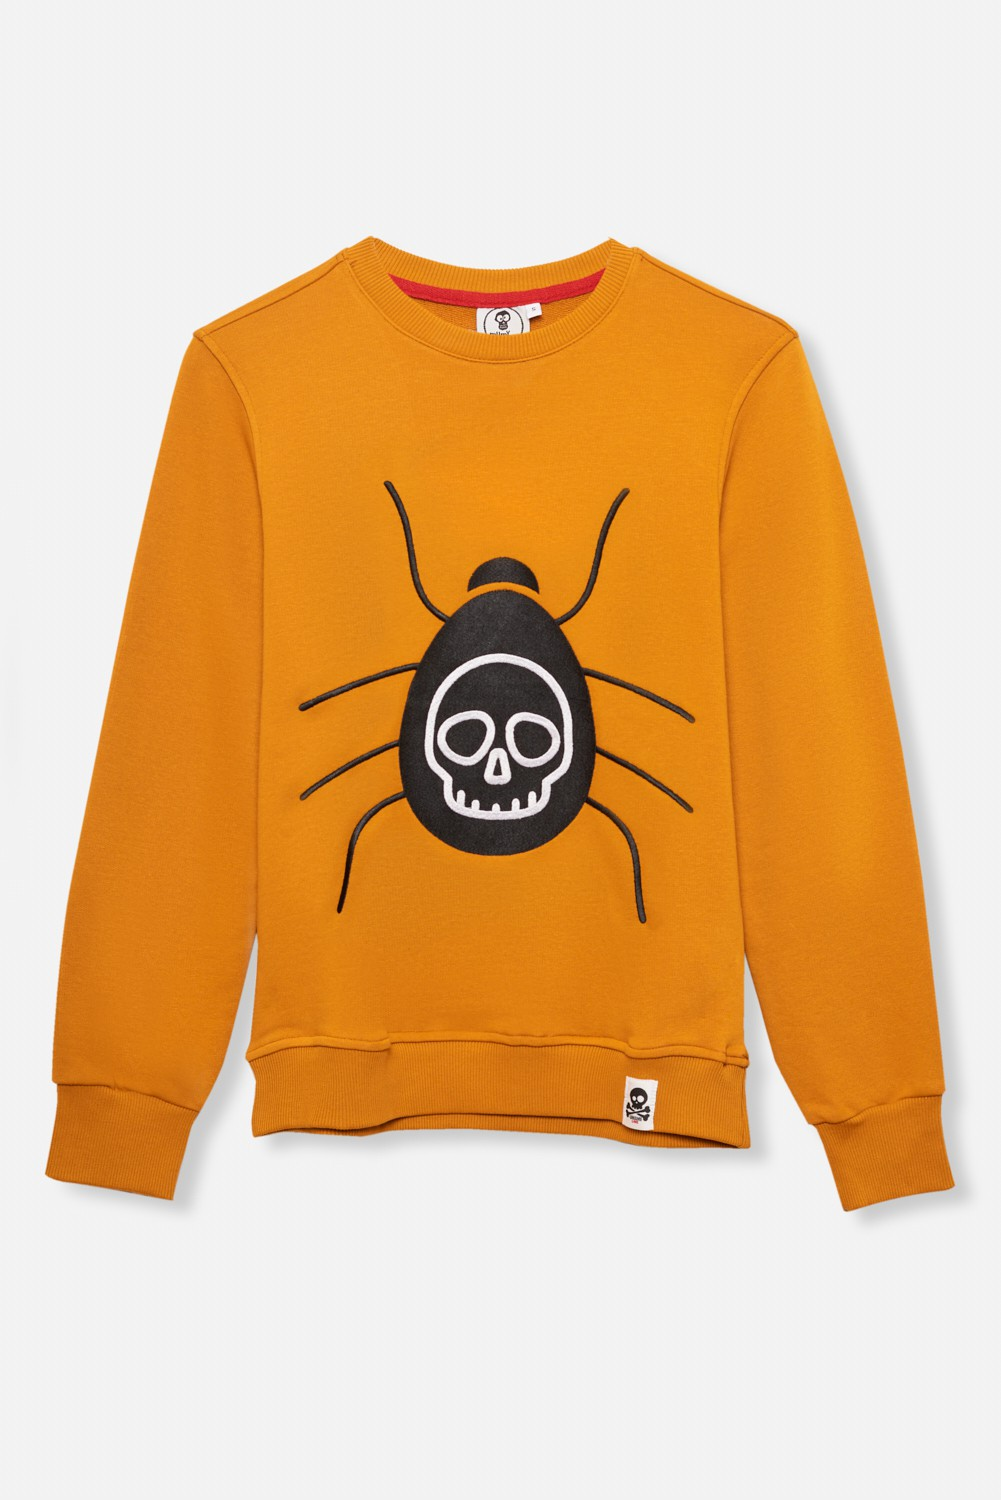 ADULT´S EMBROIDERED JERSEY UMAMI LINE SPIDER SKULL